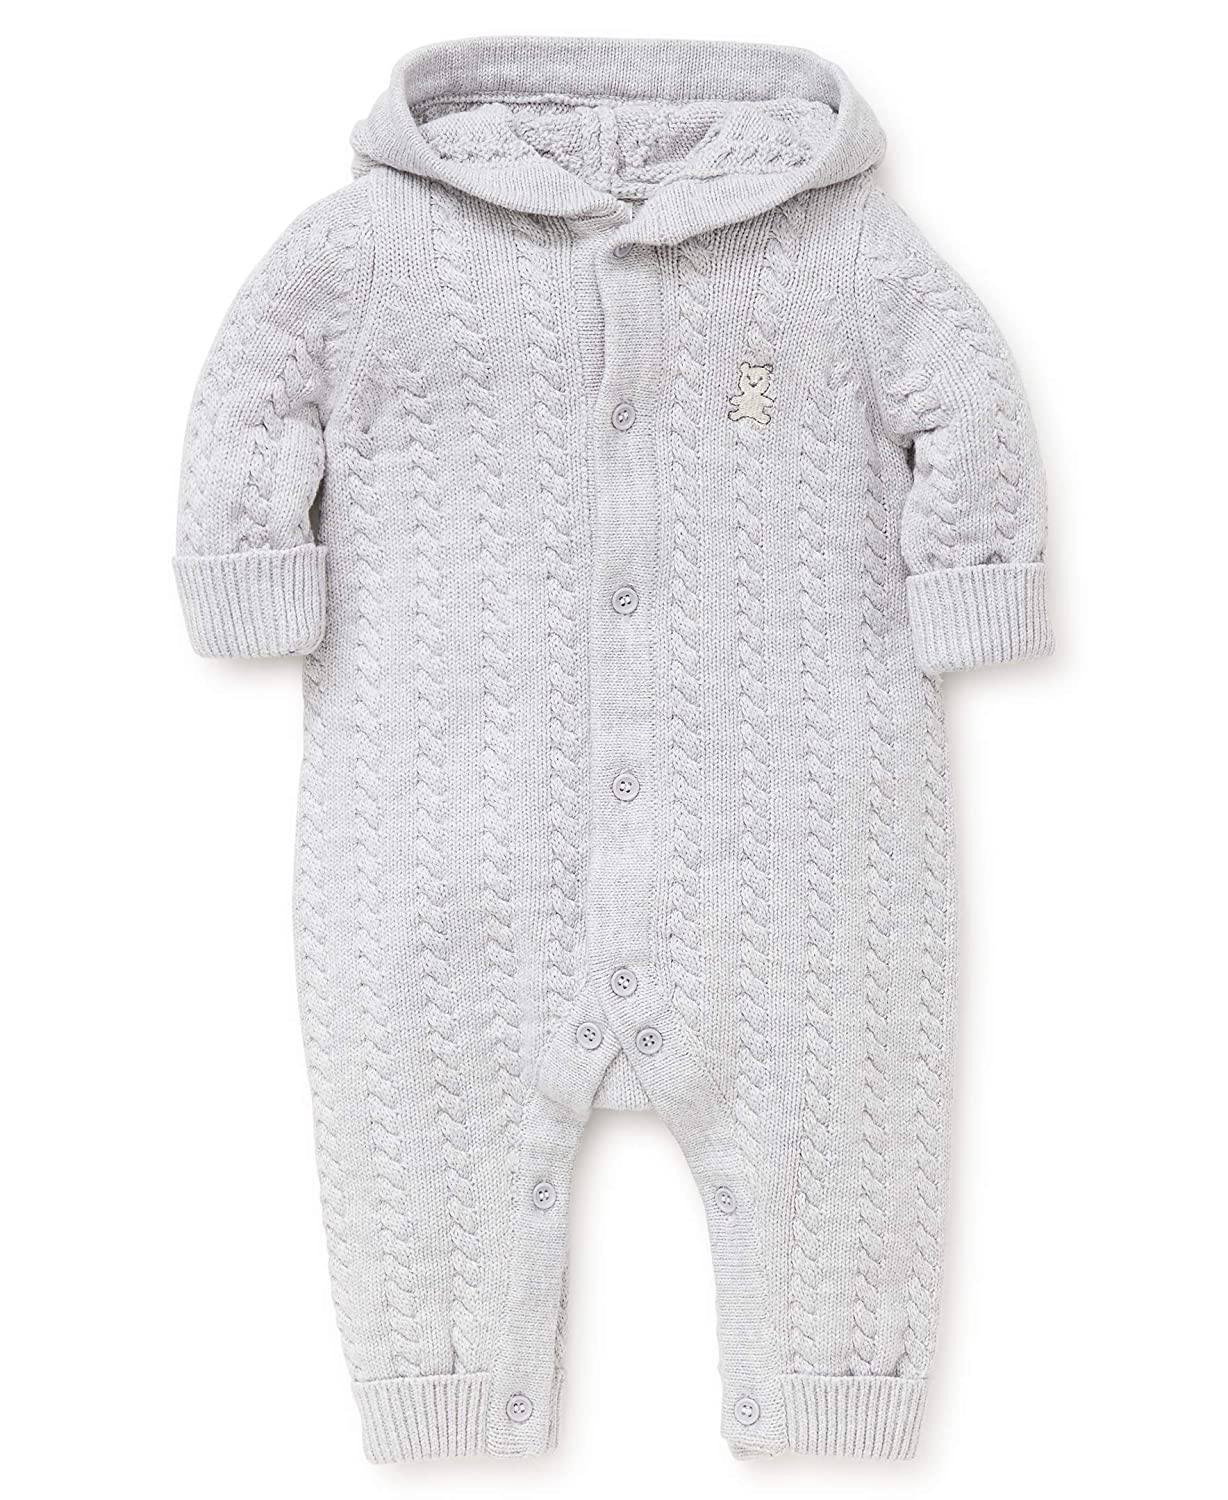 Little Me Baby Sweater Coveralls